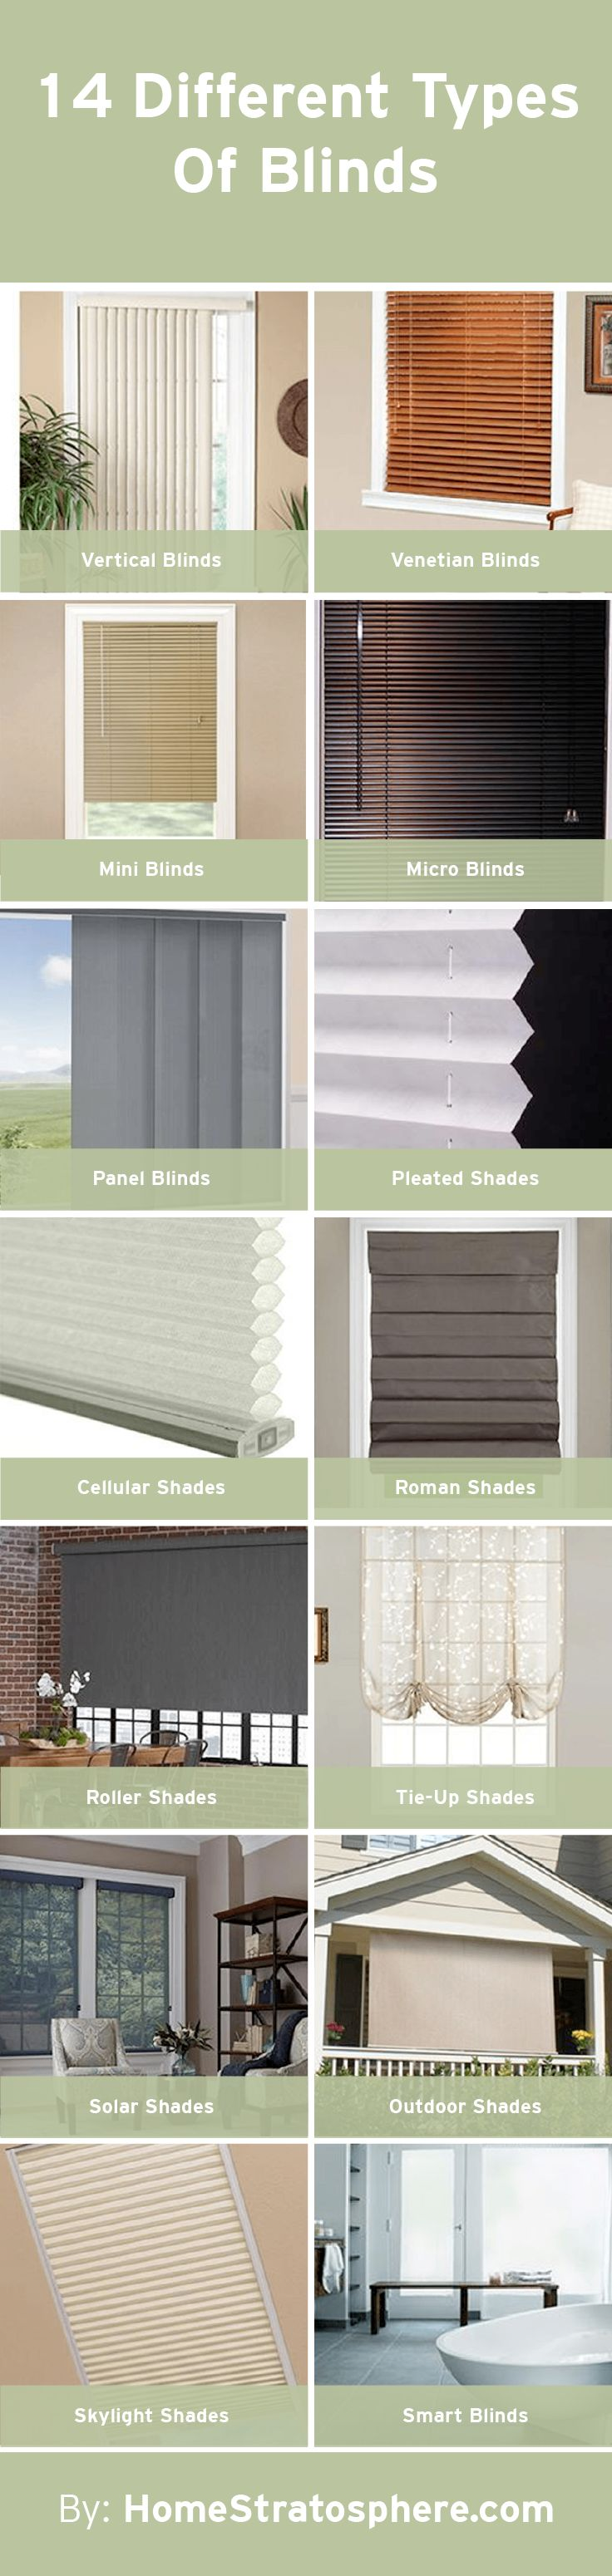 Snow white thermal fabric roman shades free shipping on orders over - 14 Different Types Of Blinds Extensive Buying Guide